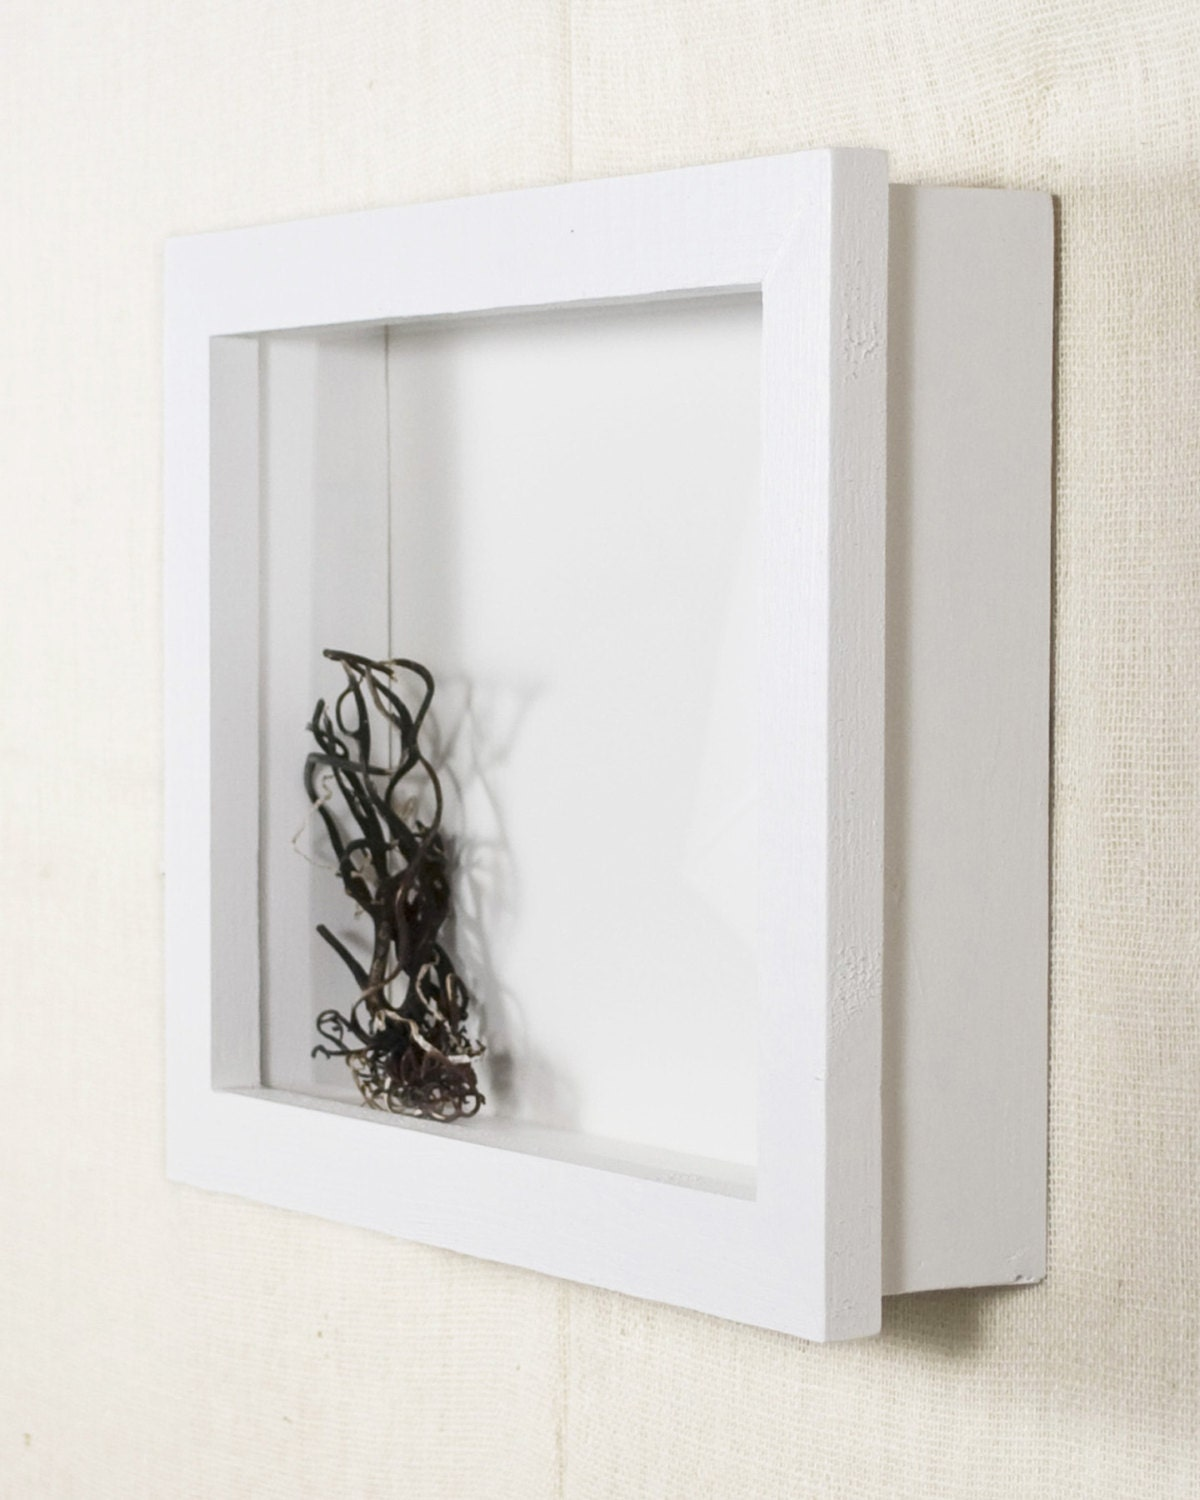 shadow box frame 18x24 deep shadow box display case picture frame display frame white